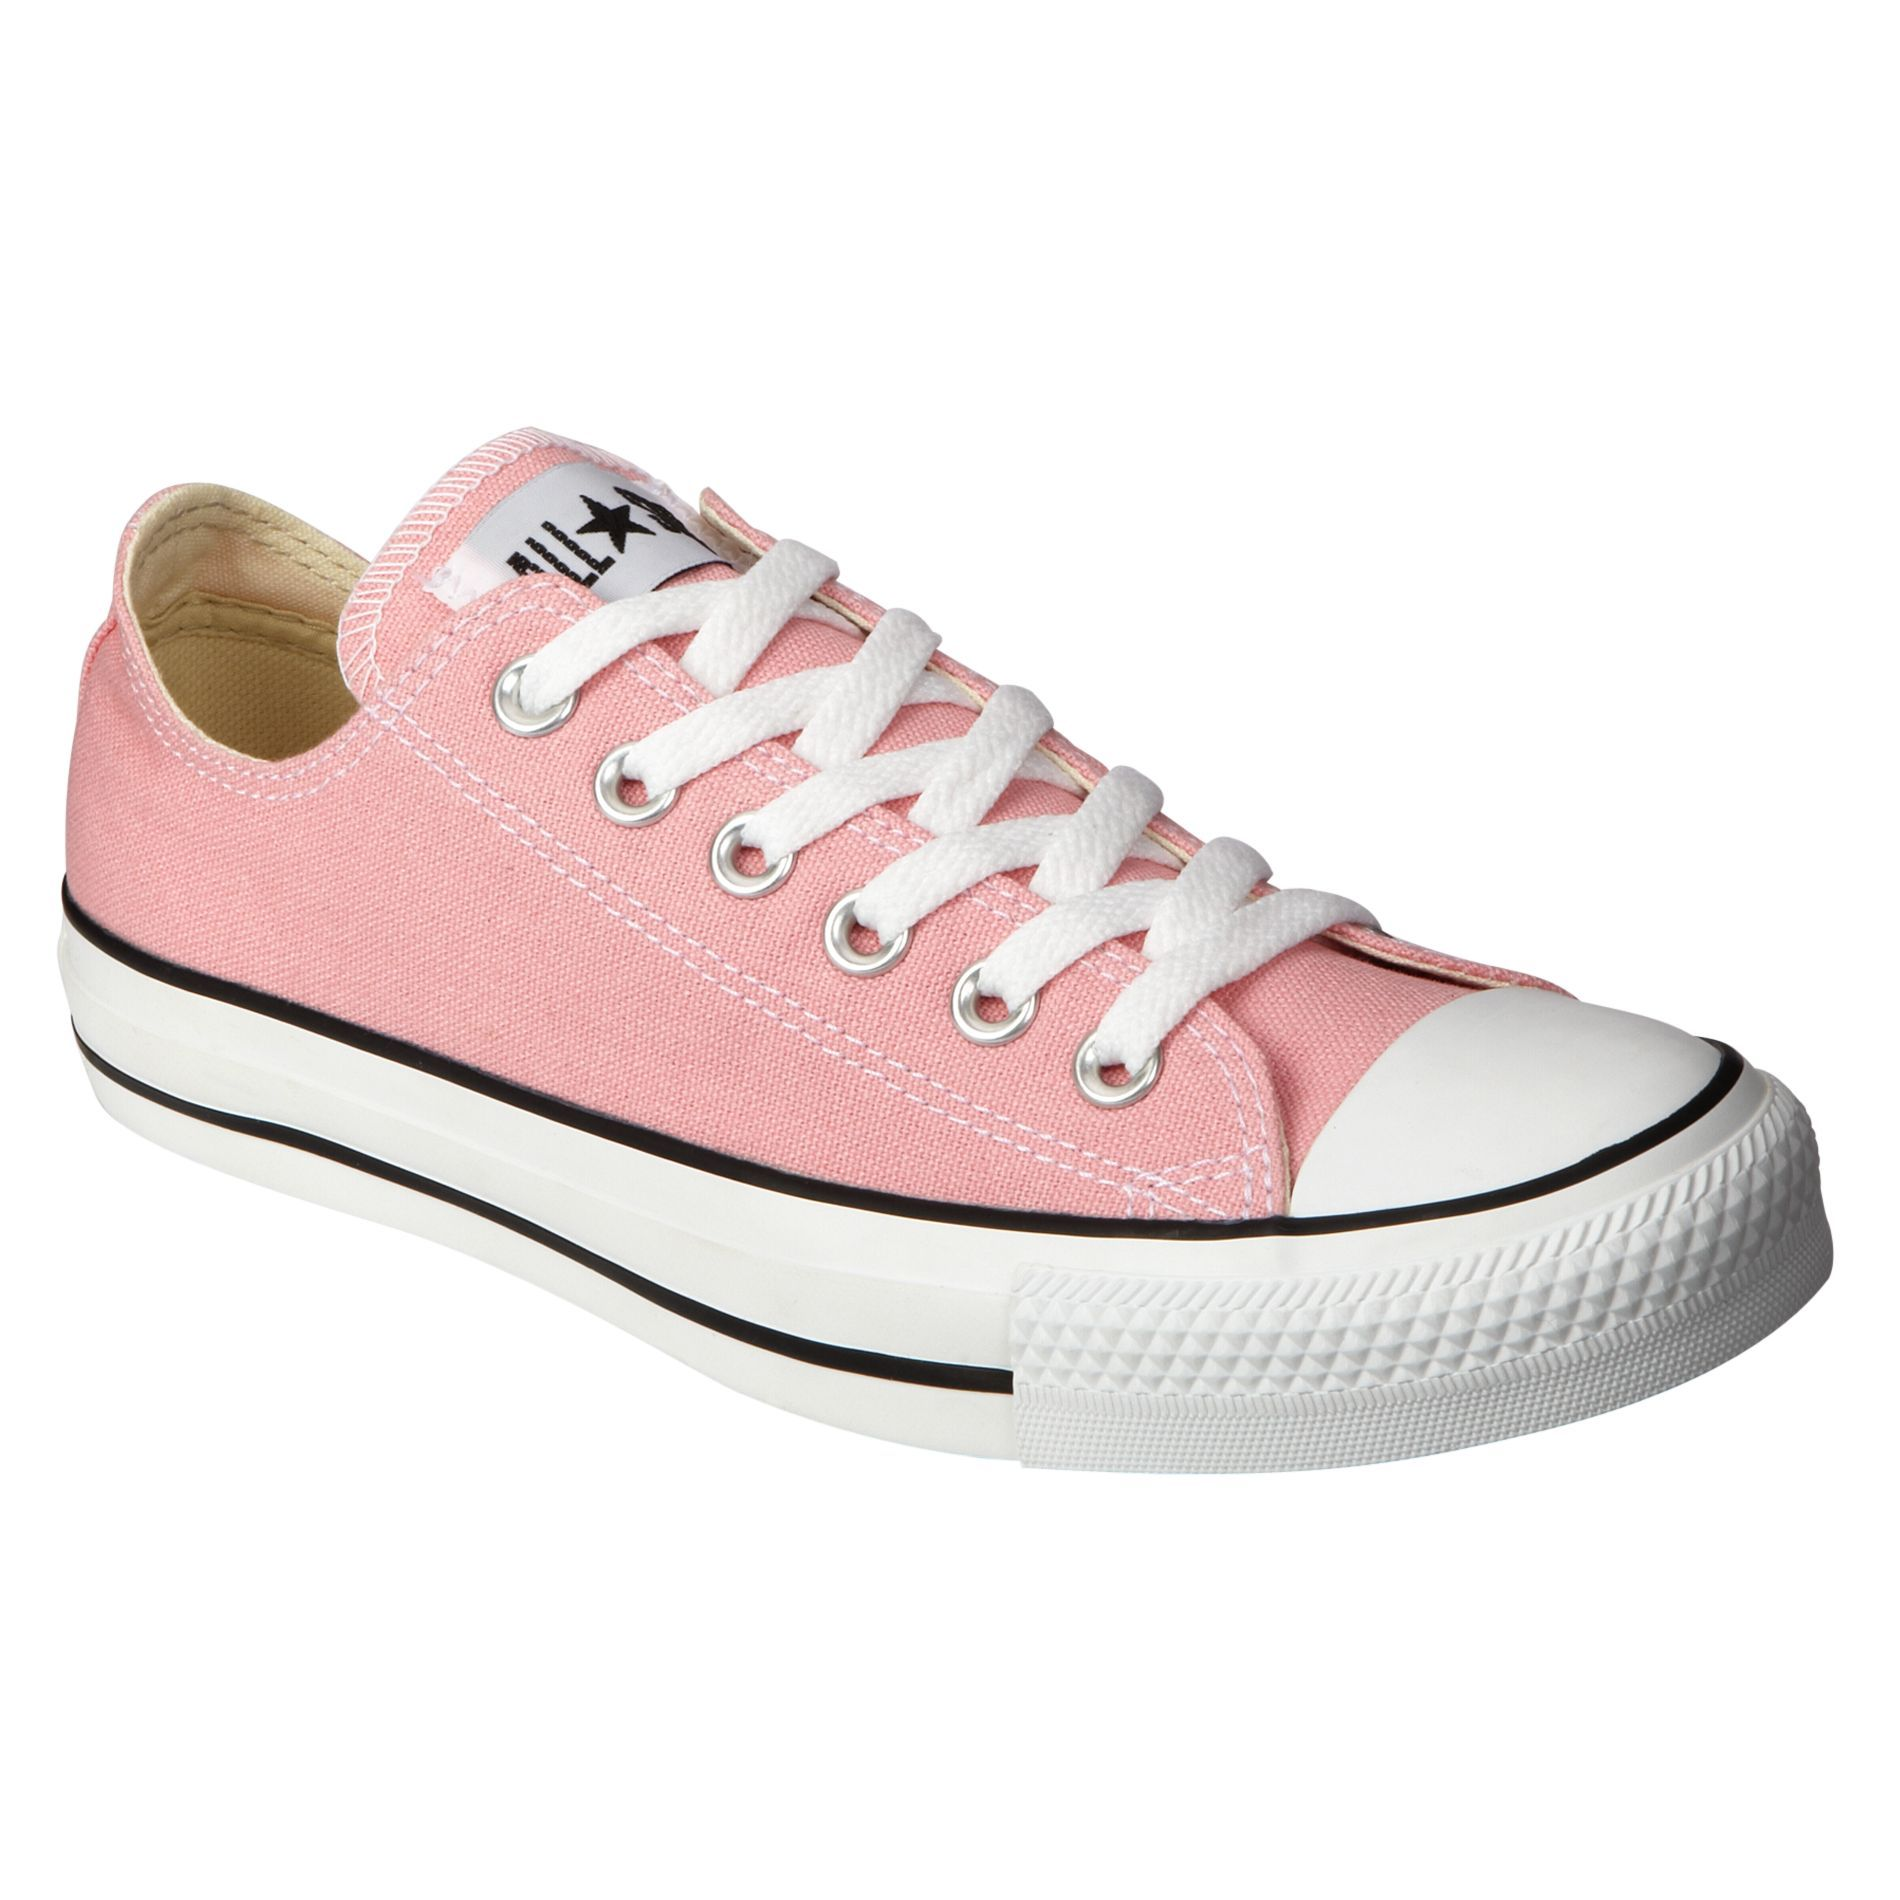 ec167f8d600 Pink Converse All Star Shoes - Pink Chuck Taylor Converse Canvas Trainers  Women and Men